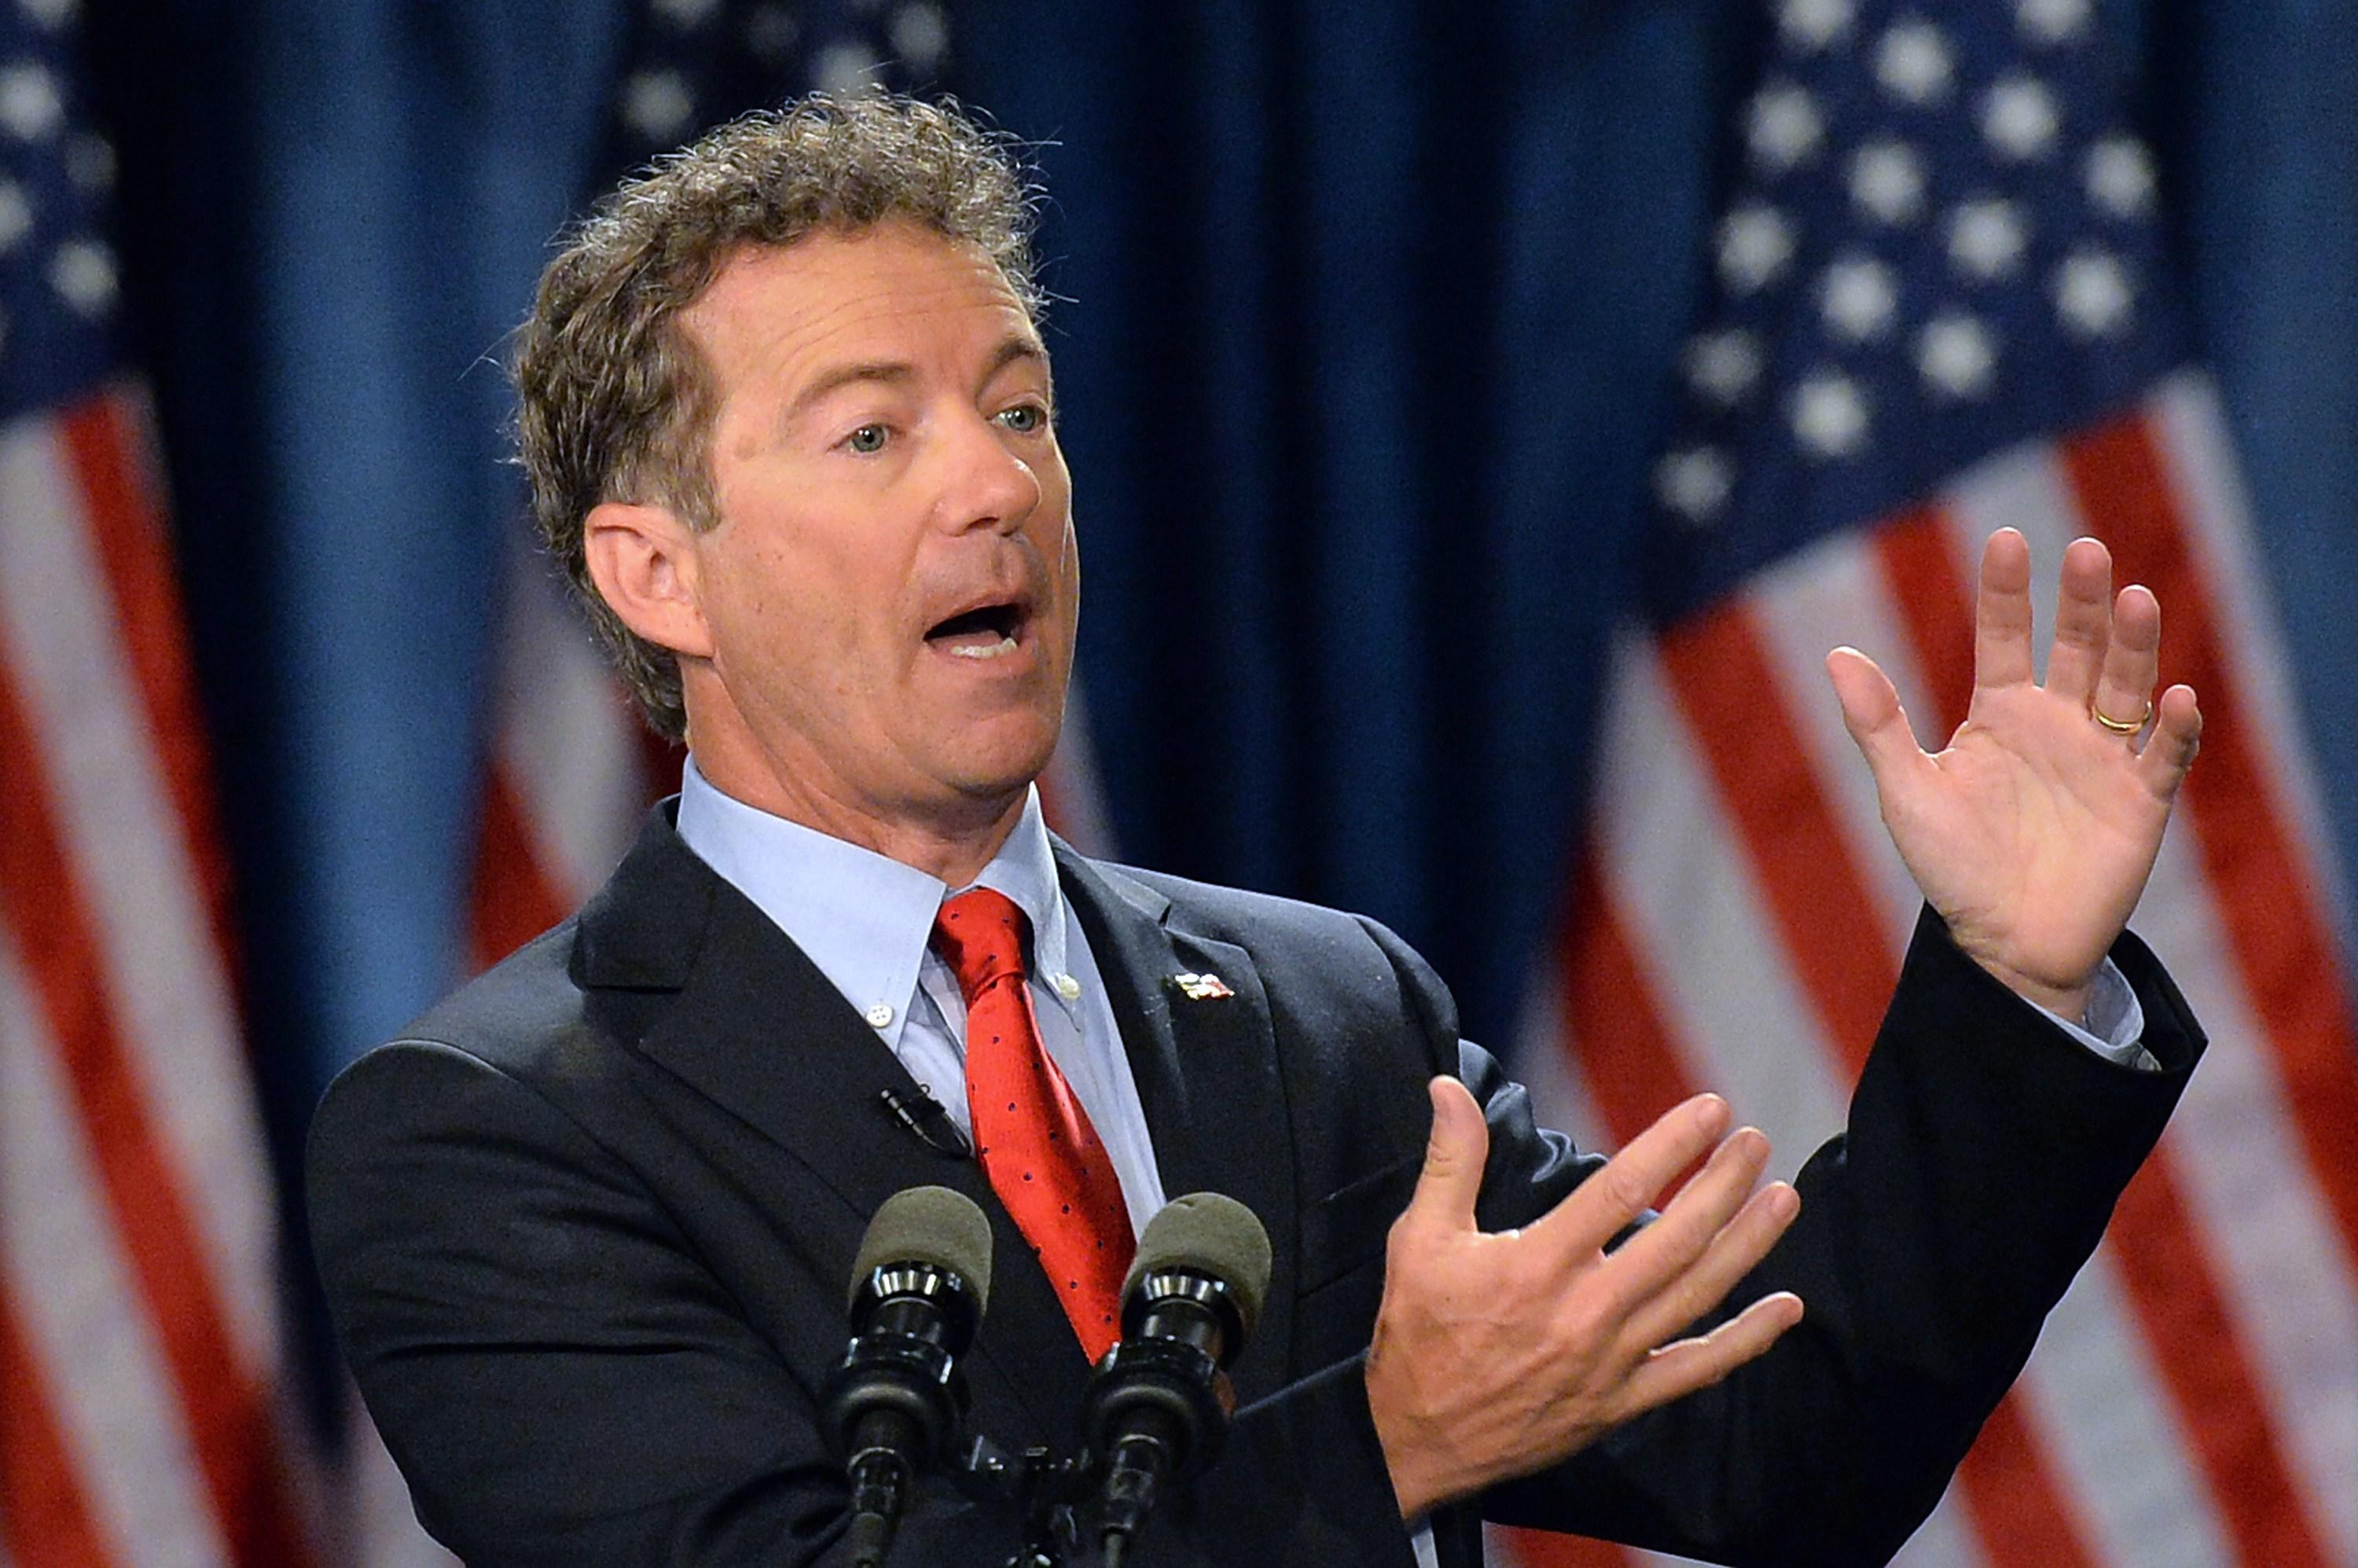 Sen. Rand Paul speaks to supporters during the kickoff of the national Stand With Rand tour on April 7, 2015, in Louisville, Kentucky.